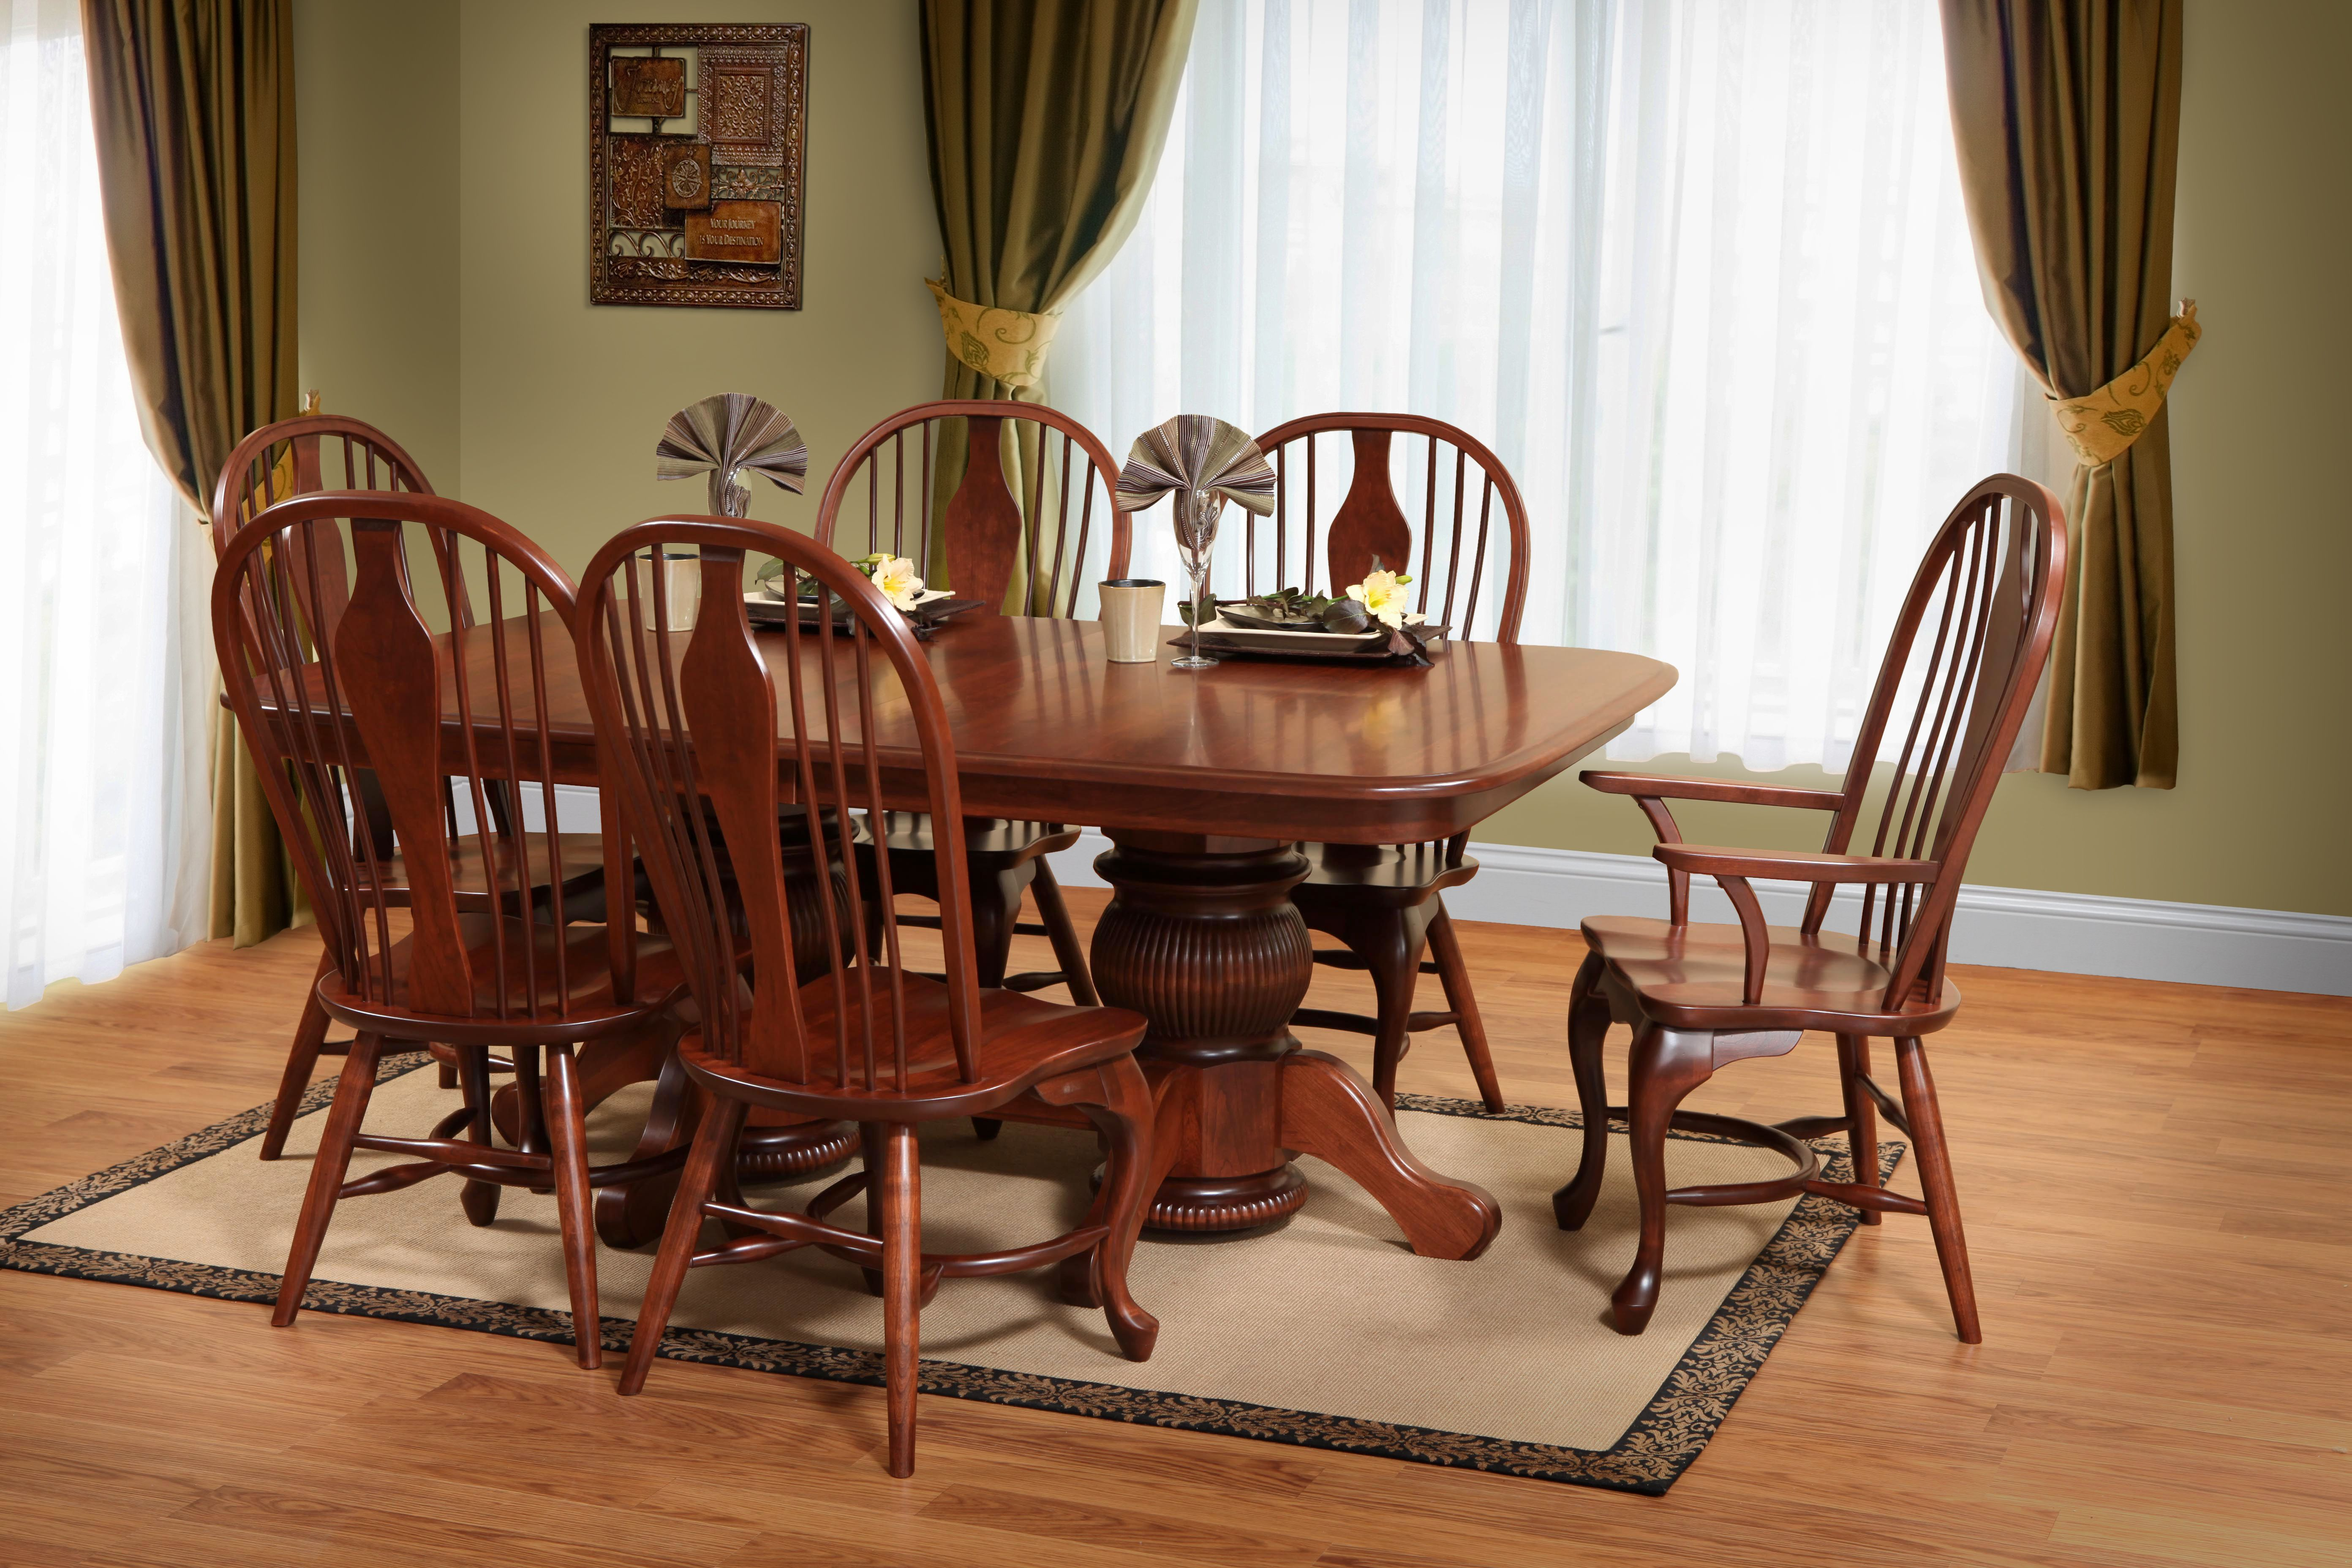 Popular This Week A Rich Cherry Stain And Regal Details Give This Double Pedestal Table A Stately App Dining Room Furniture Oval Table Dining Dining Room Sets